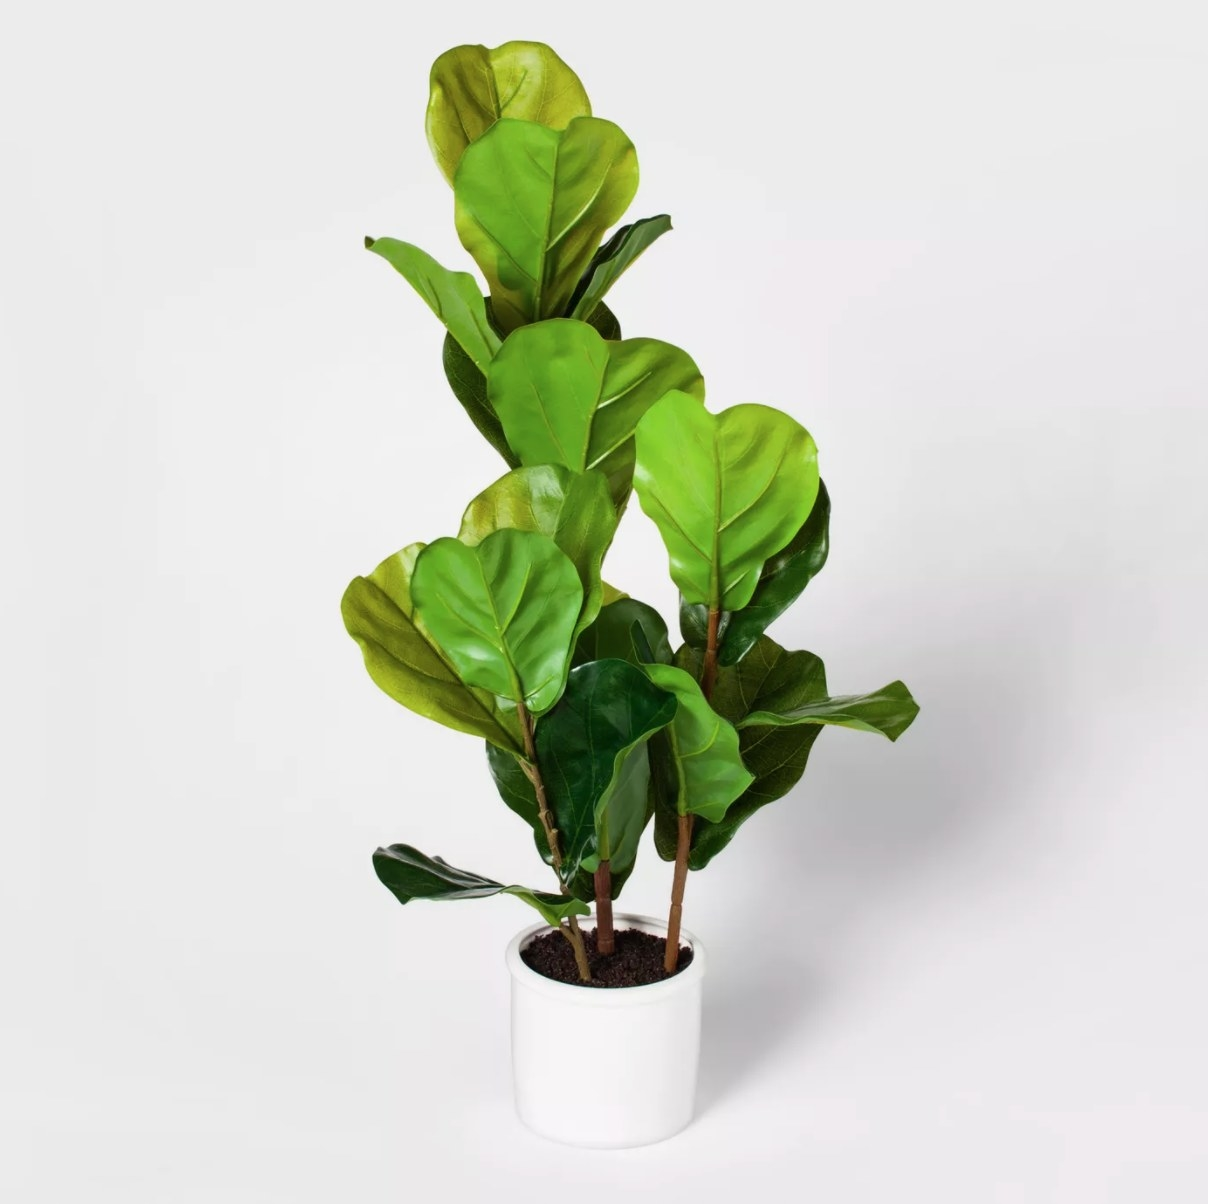 The fiddle leaf fig plant in a white planter